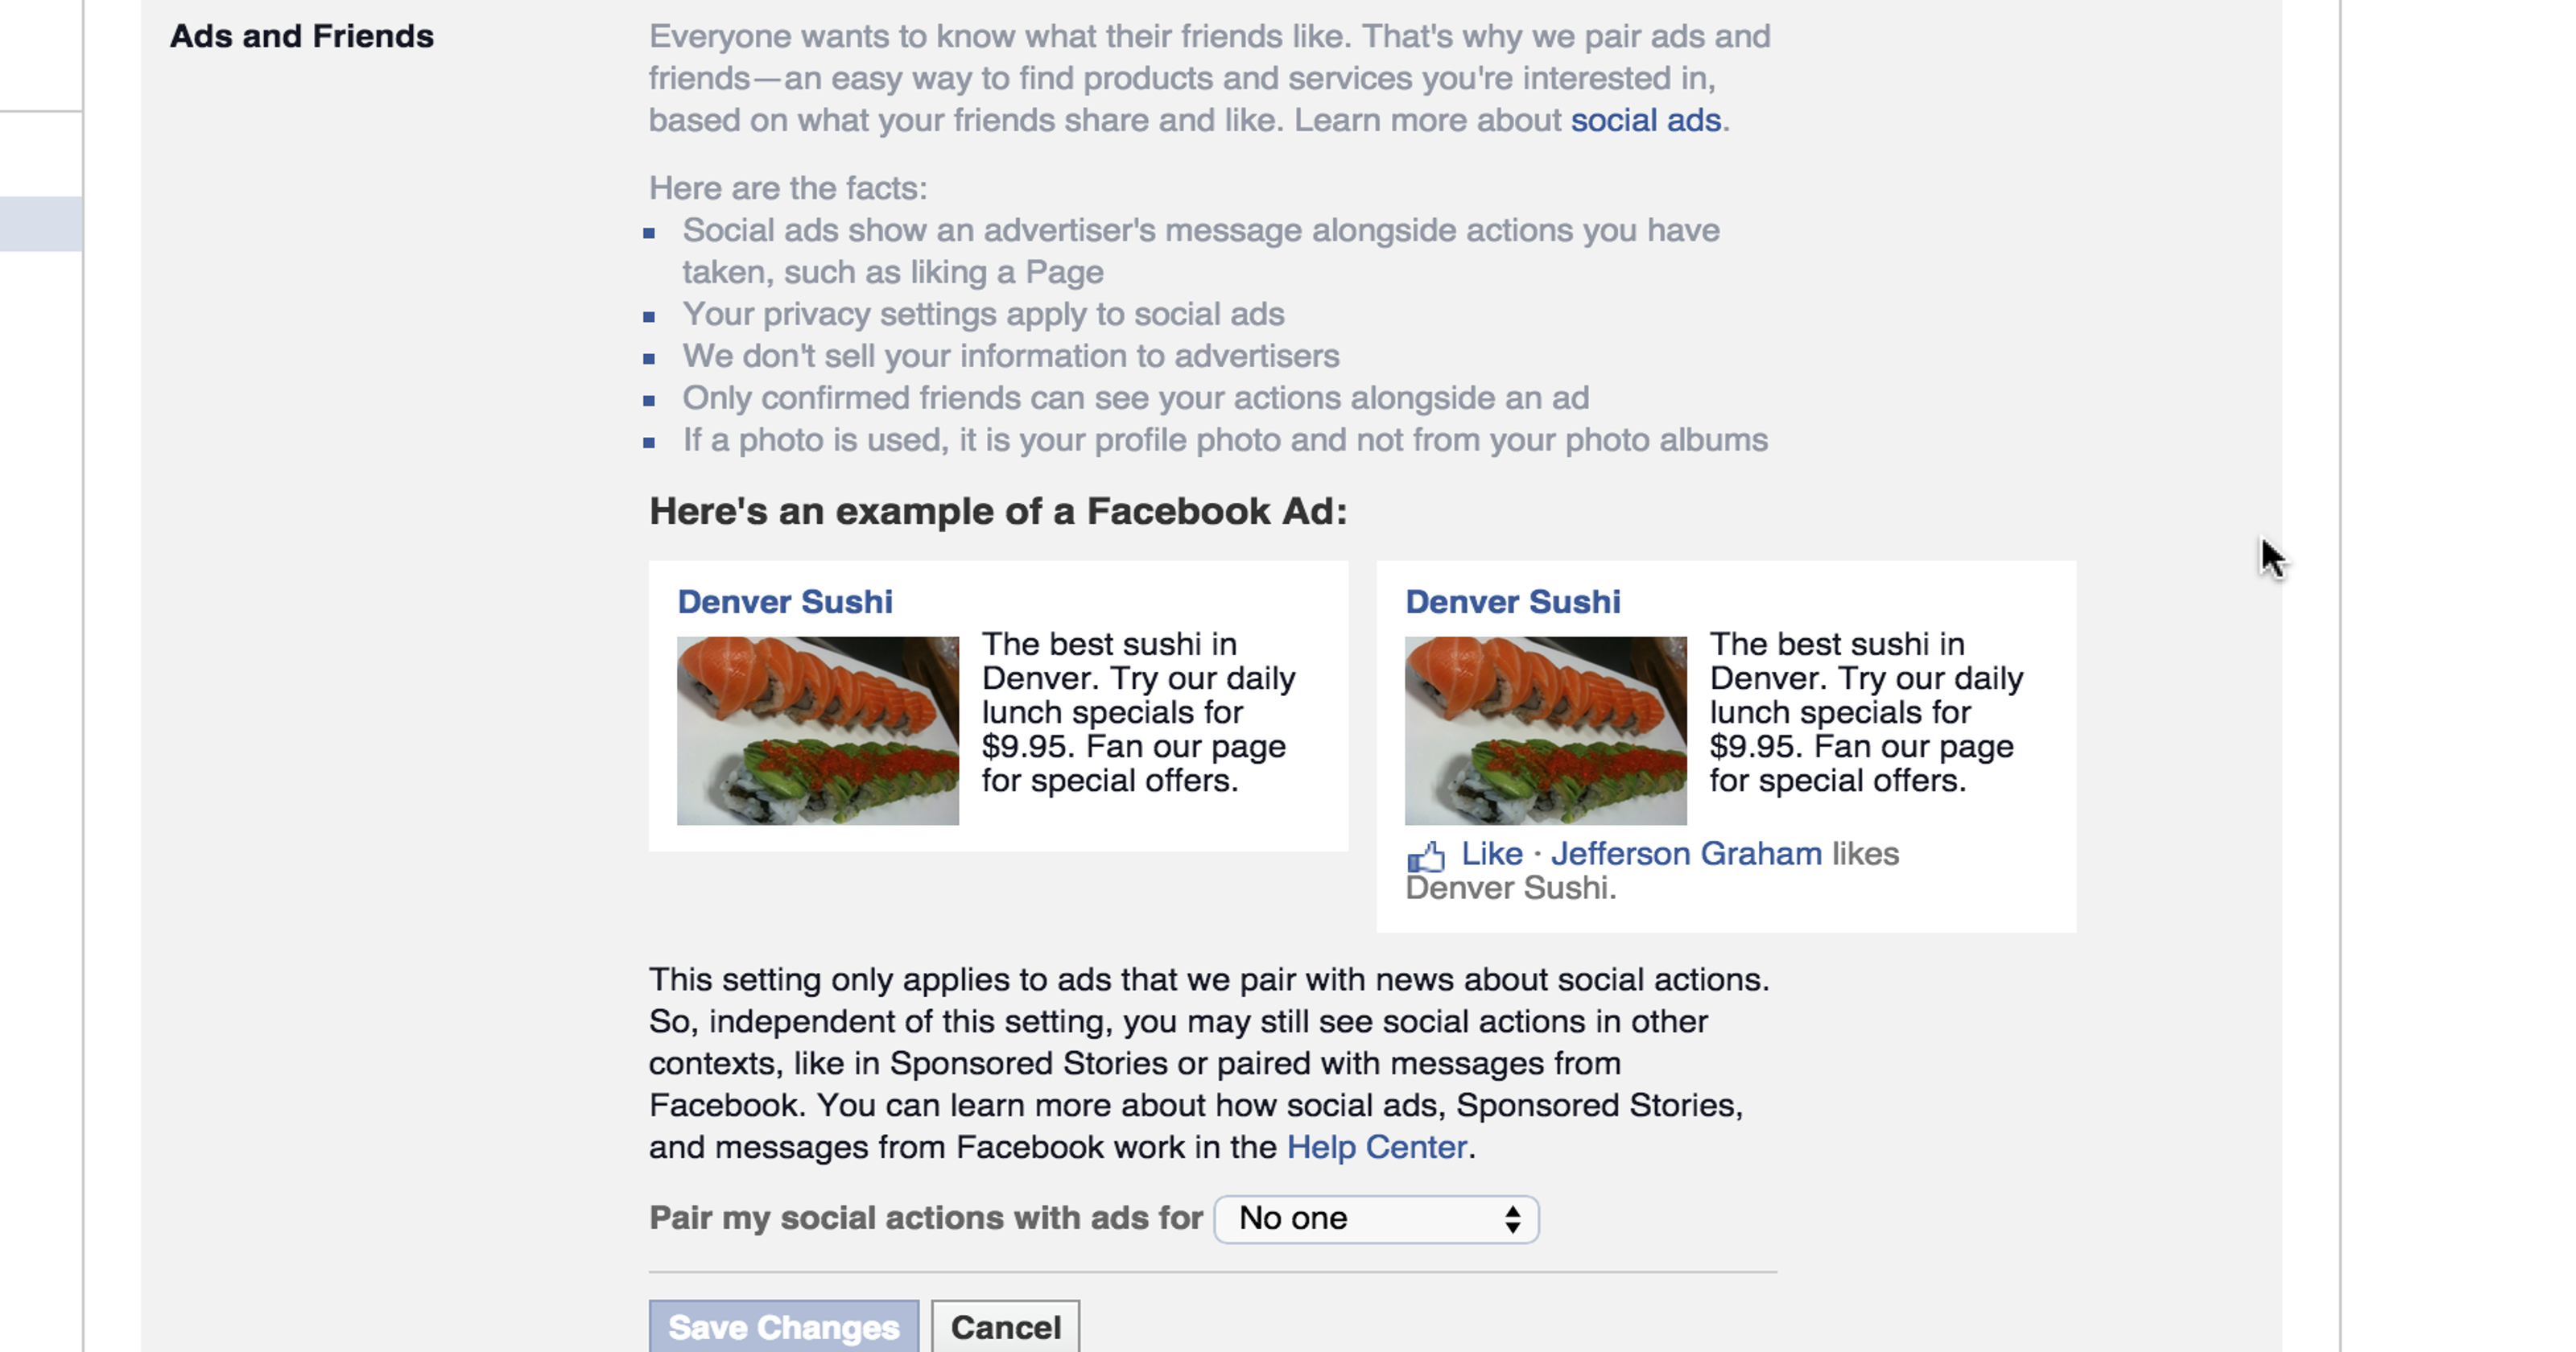 How to get your name out of Facebook ads